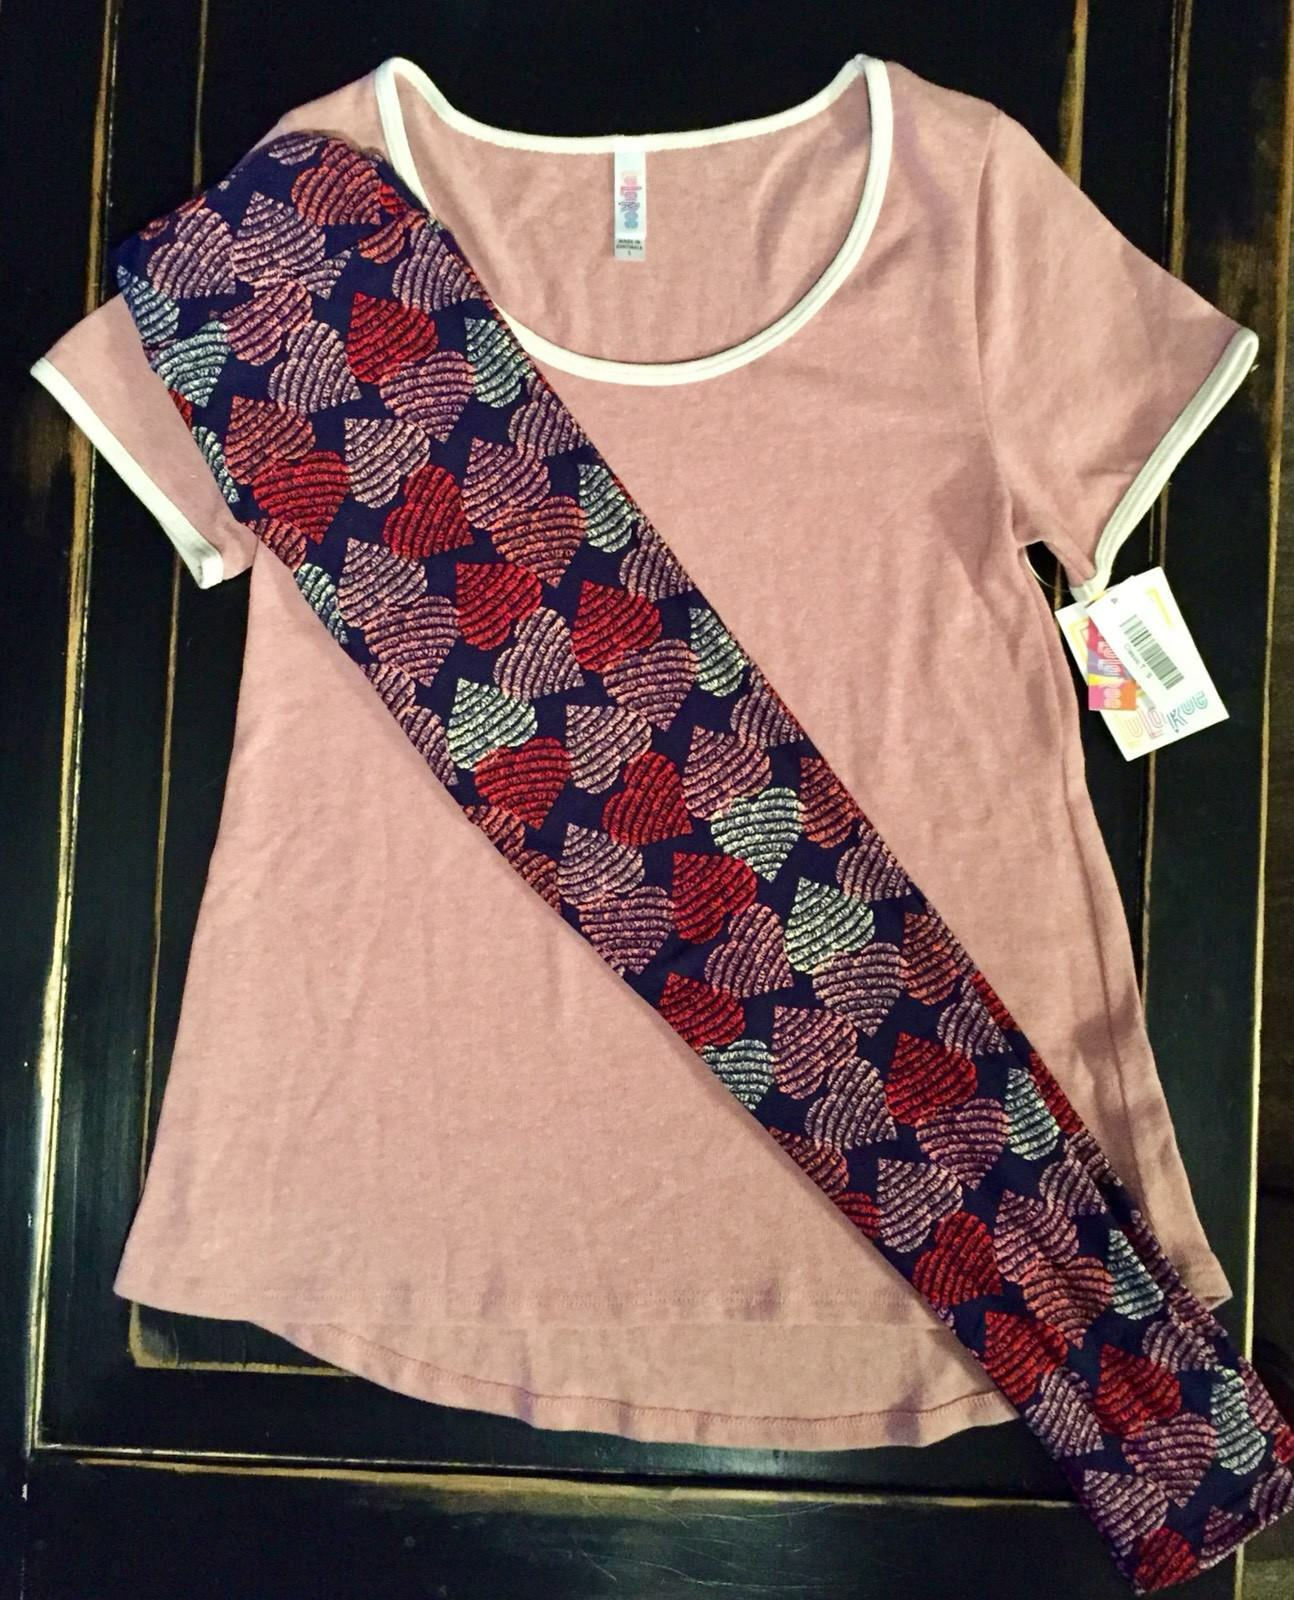 FREE SHIP  NWT LuLaRoe Outfit OS HEARTS Leggings NAVY & S Pink Classic T Top